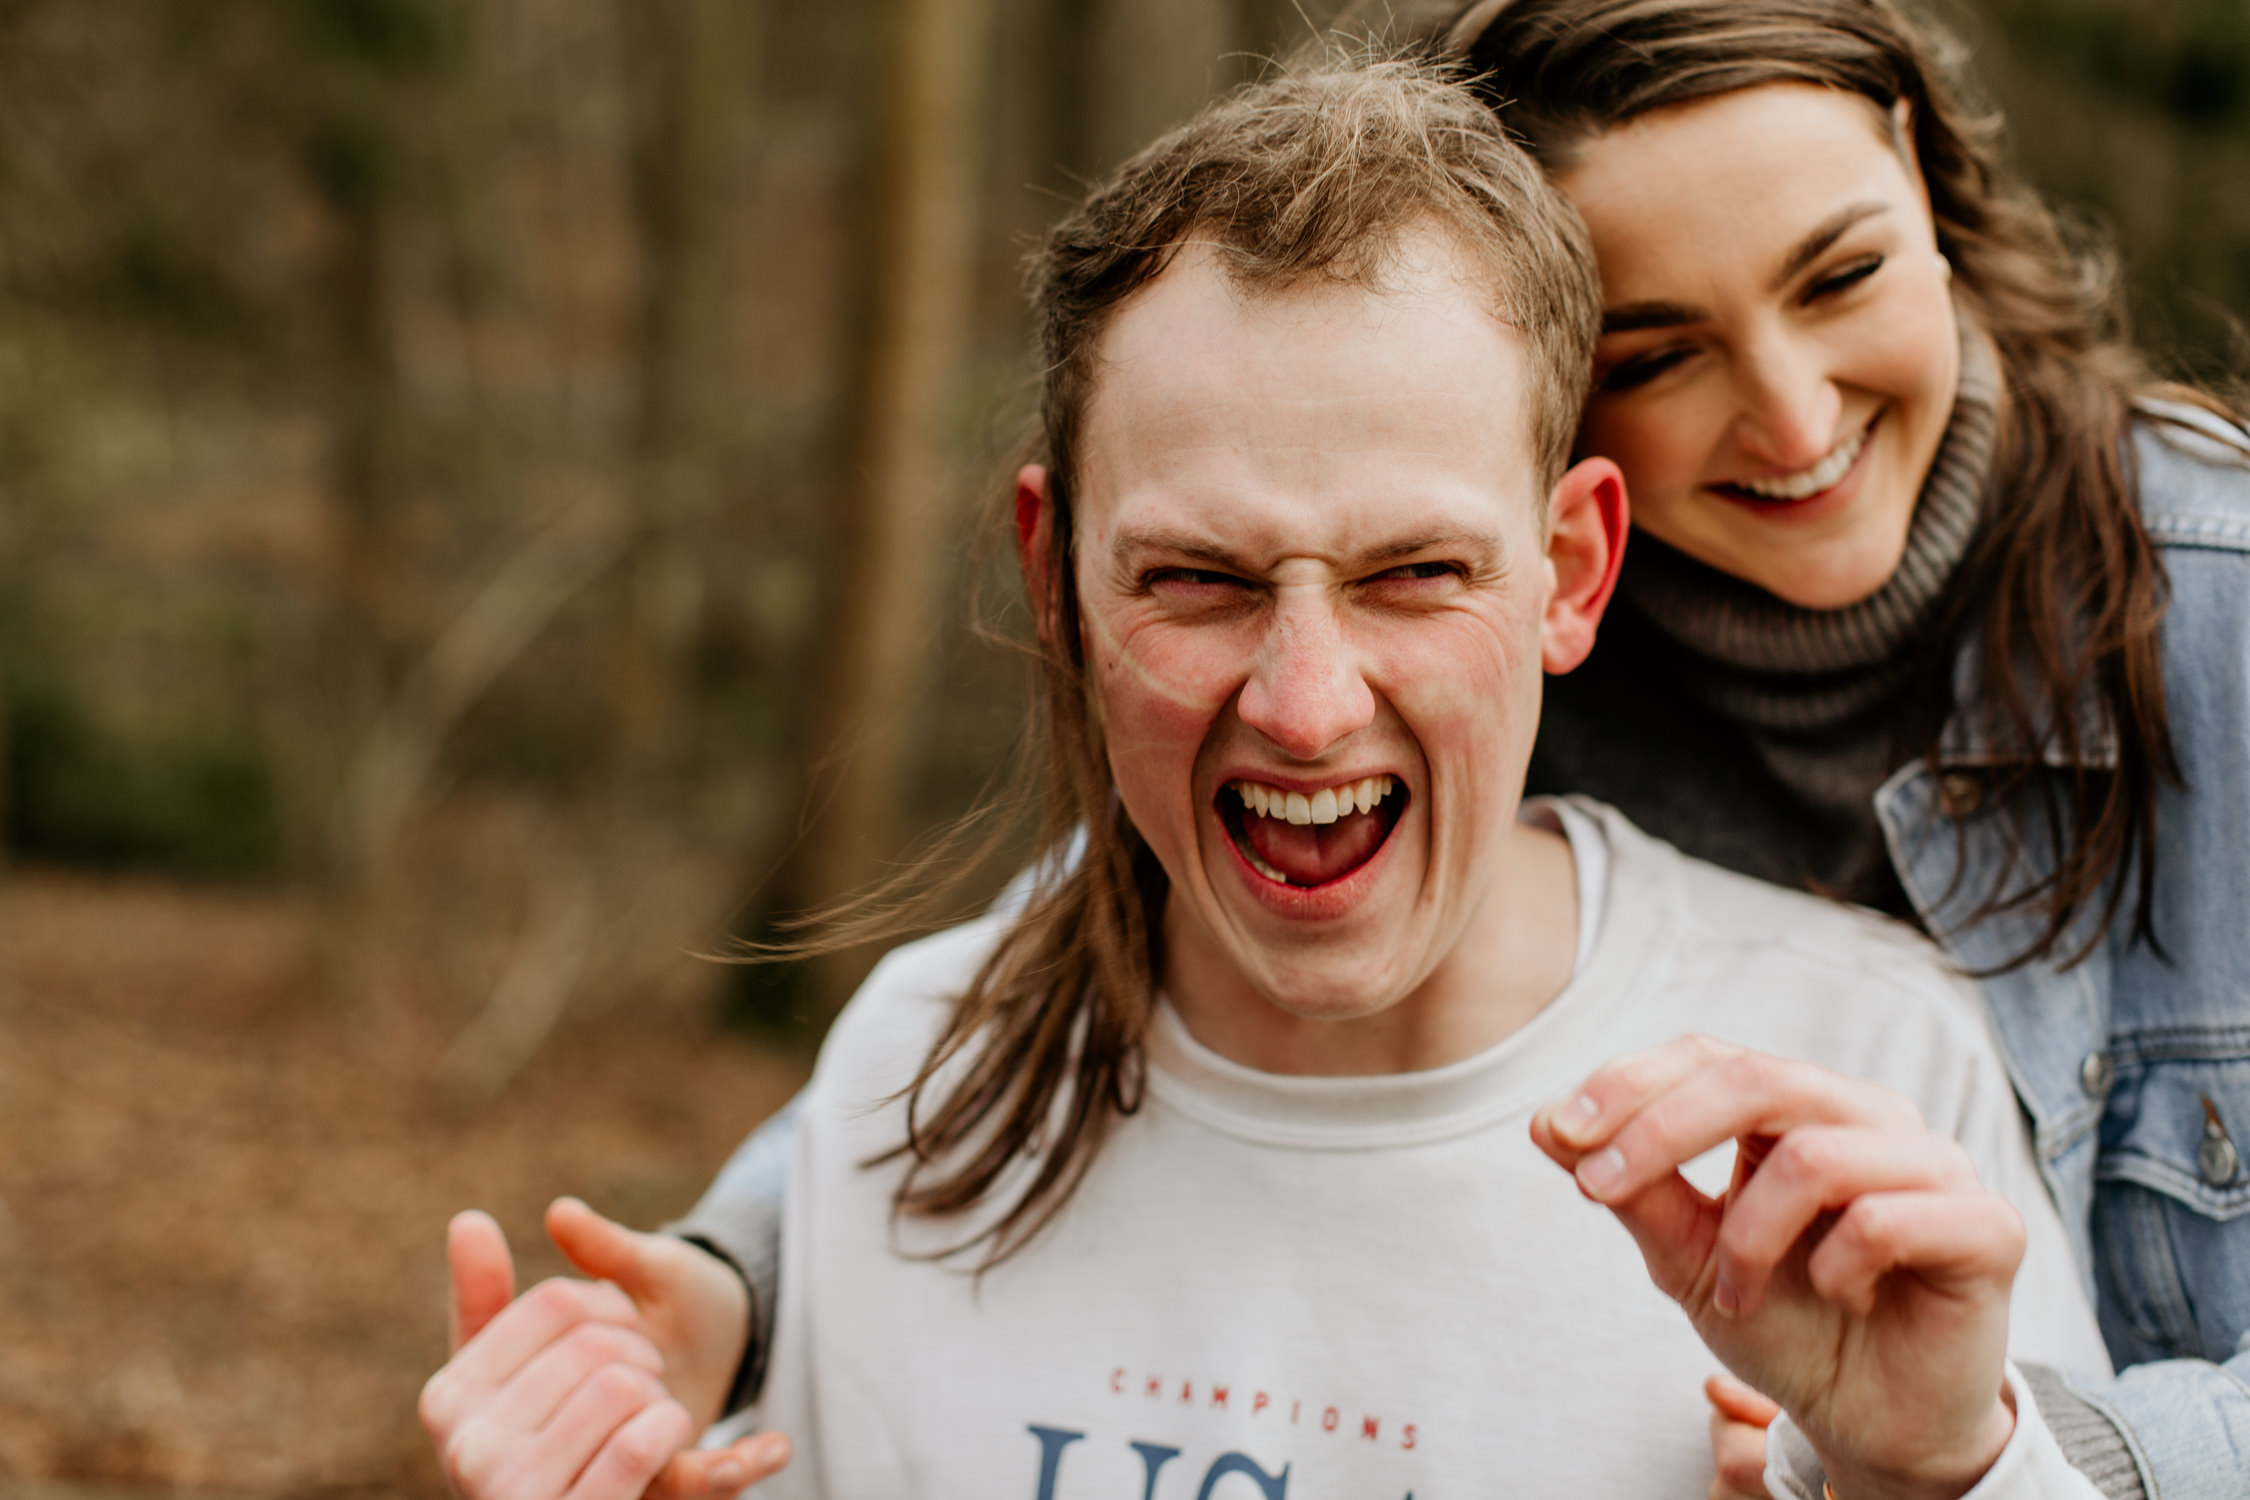 fun couple session near Broadway village in the Cotswolds area